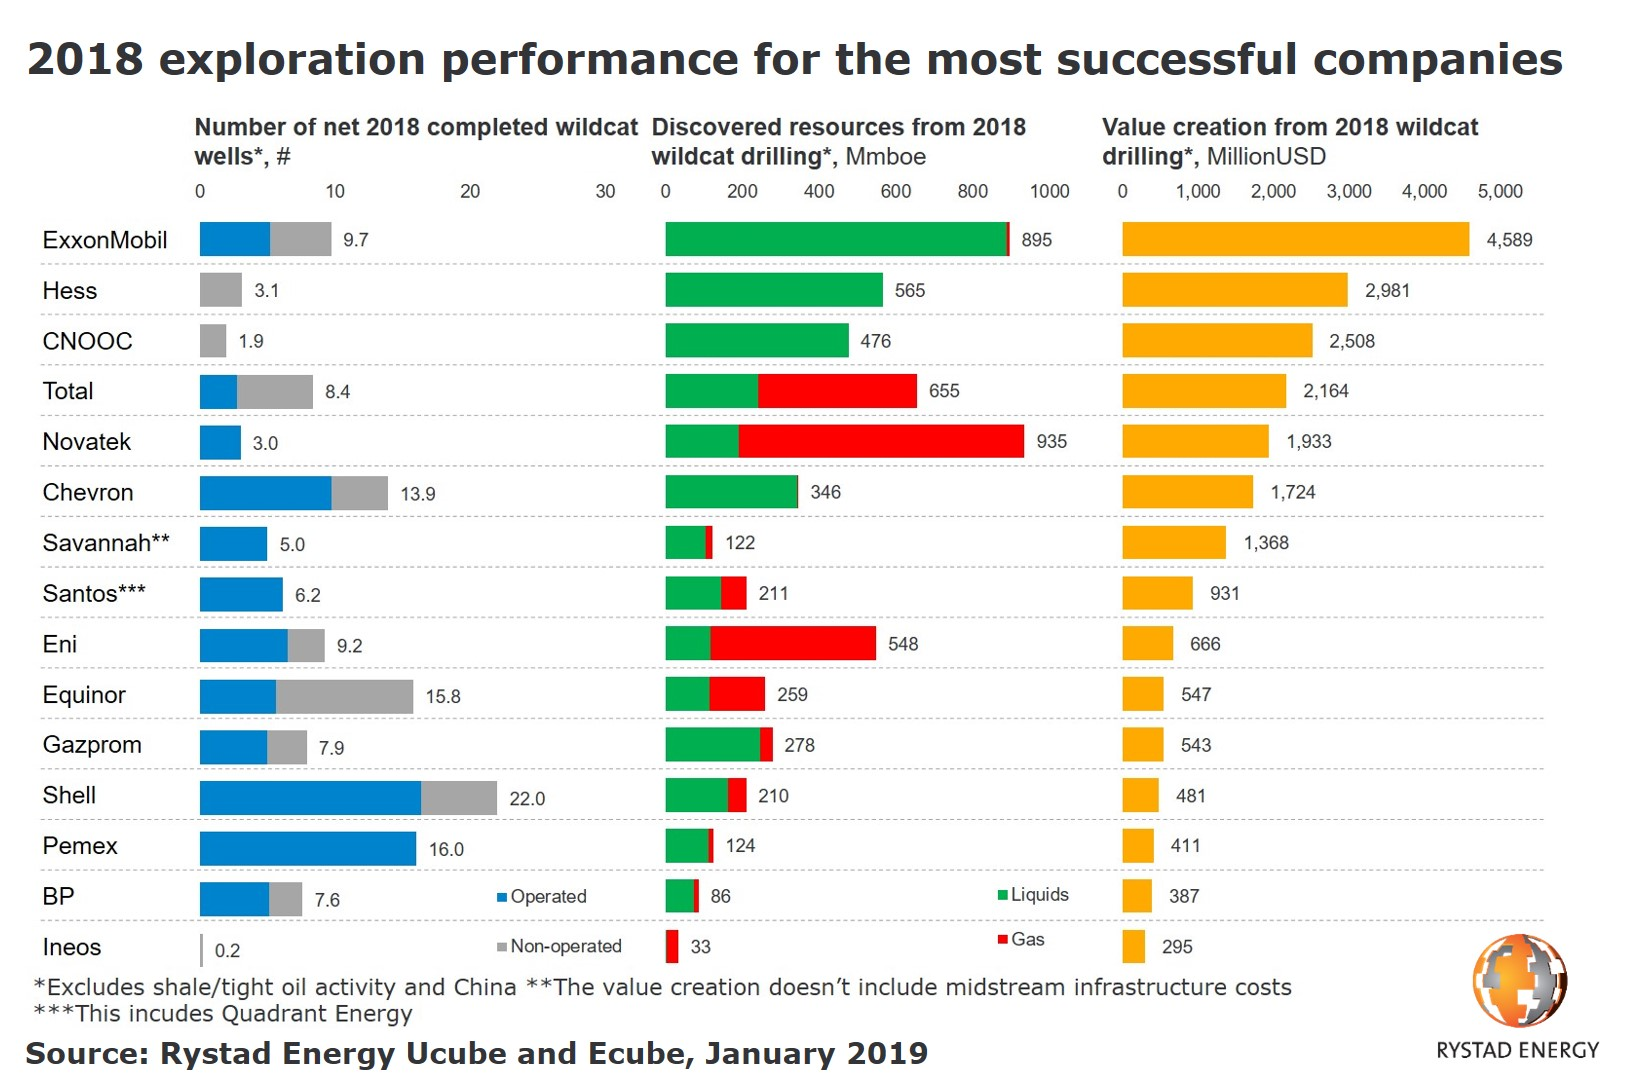 A chart showing 2018 exploration performance for the most successful companies. Source: Rystad Energy Ucube and Ecube, January 2019